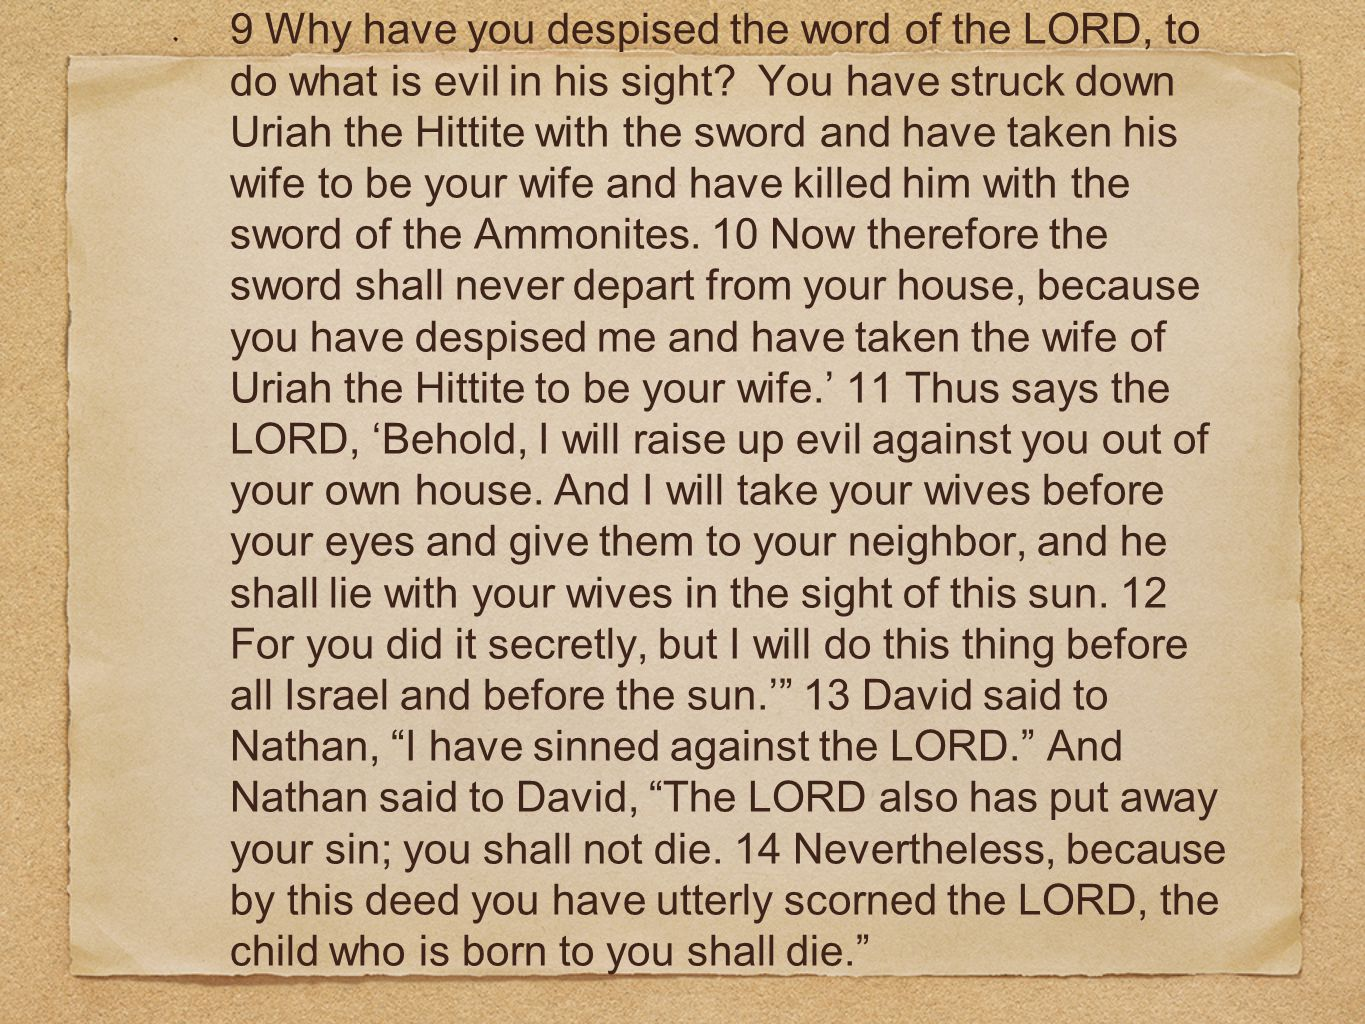 9 Why have you despised the word of the LORD, to do what is evil in his sight? You have struck down Uriah the Hittite with the sword and have taken hi